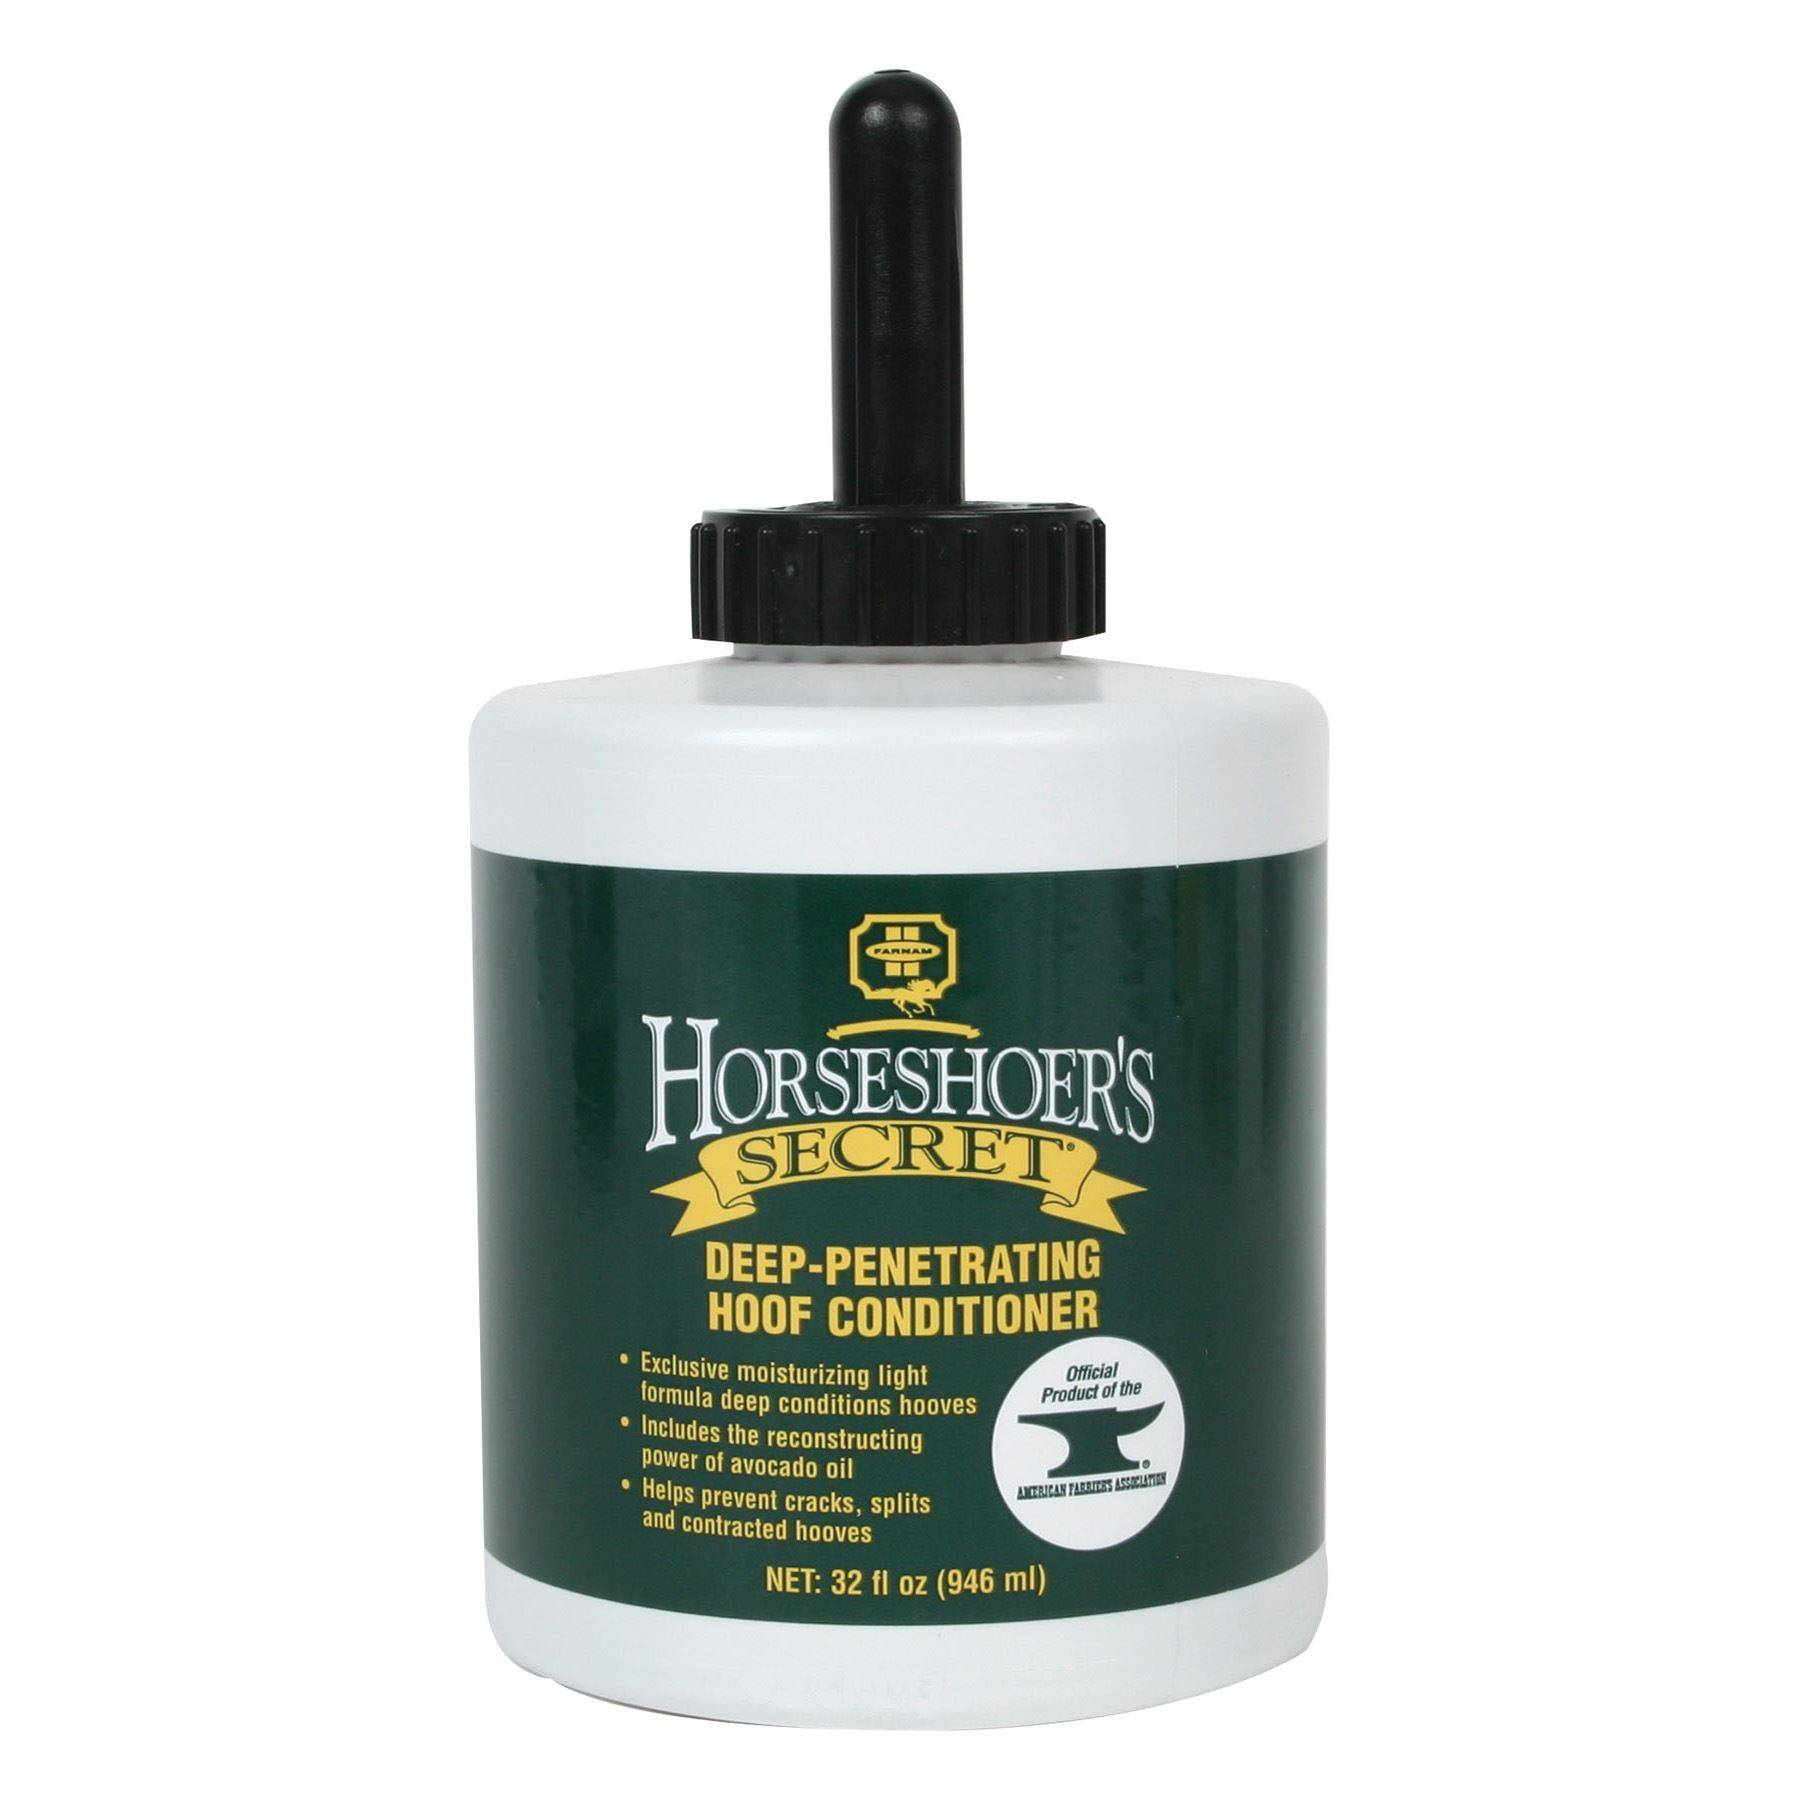 Horseshoer's Secret Hoof Conditioner